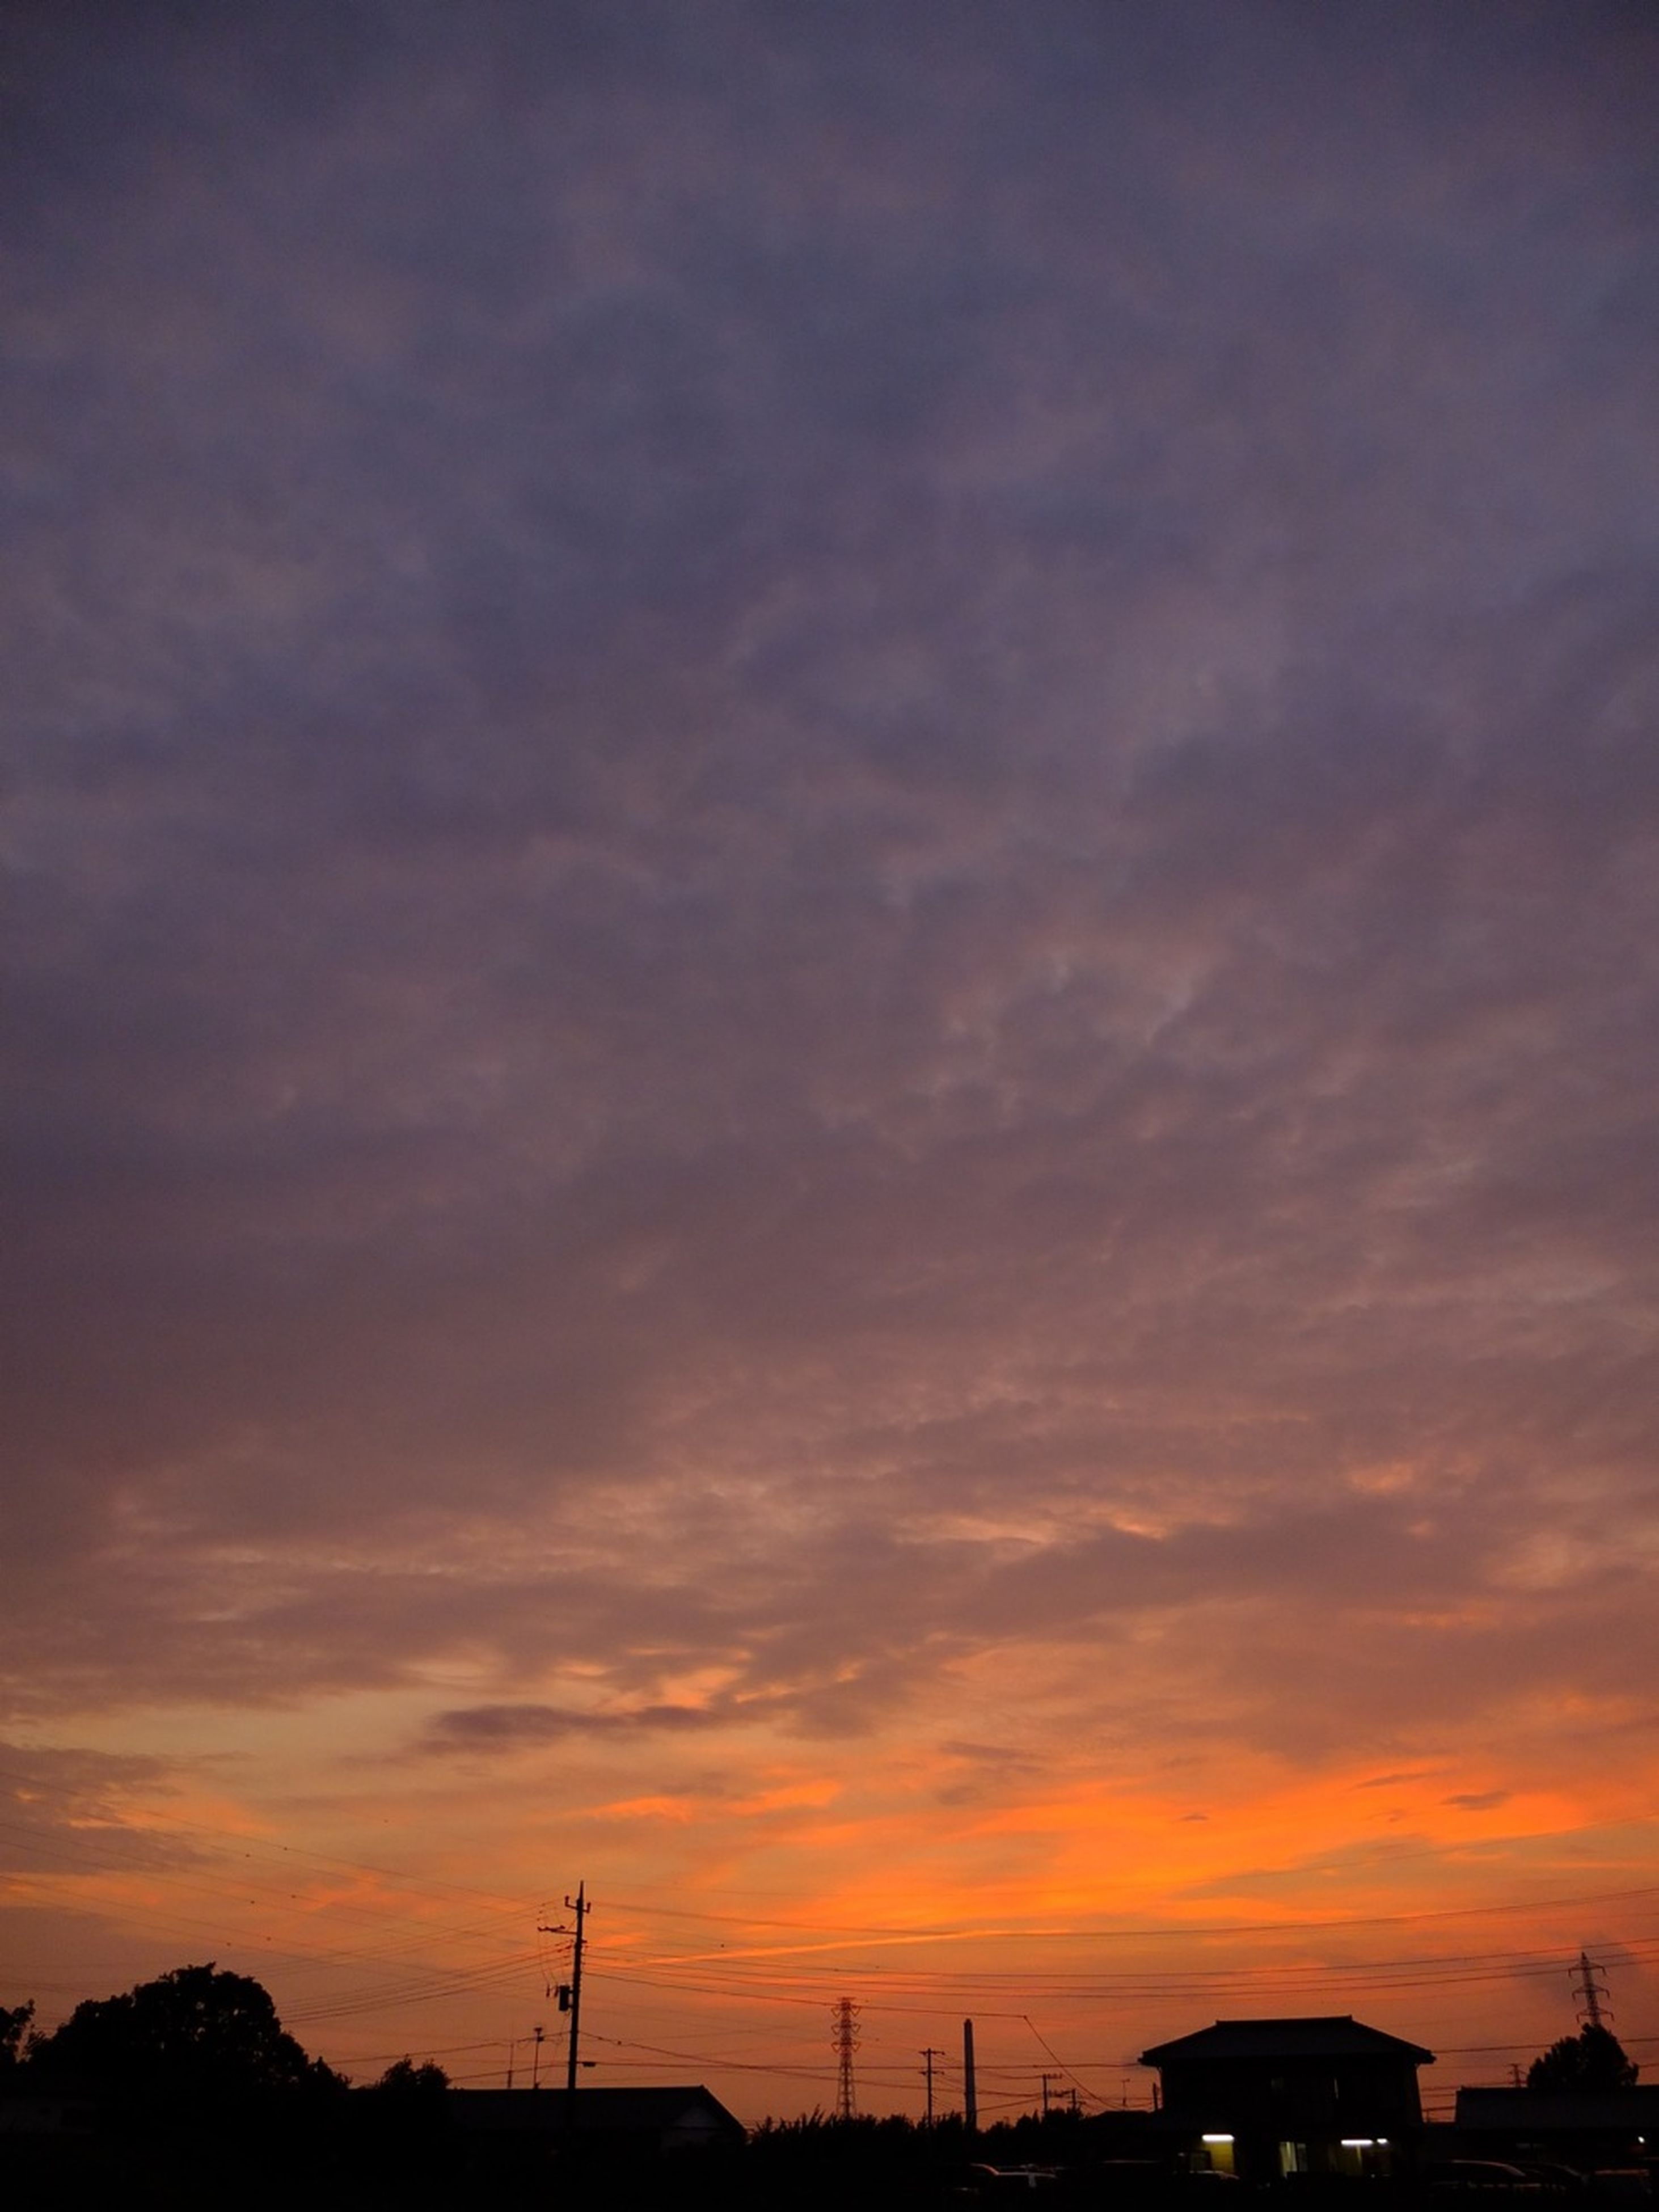 sunset, silhouette, sky, orange color, low angle view, beauty in nature, scenics, cloud - sky, dramatic sky, electricity pylon, tranquility, nature, tranquil scene, power line, idyllic, dusk, cloud, built structure, outdoors, electricity